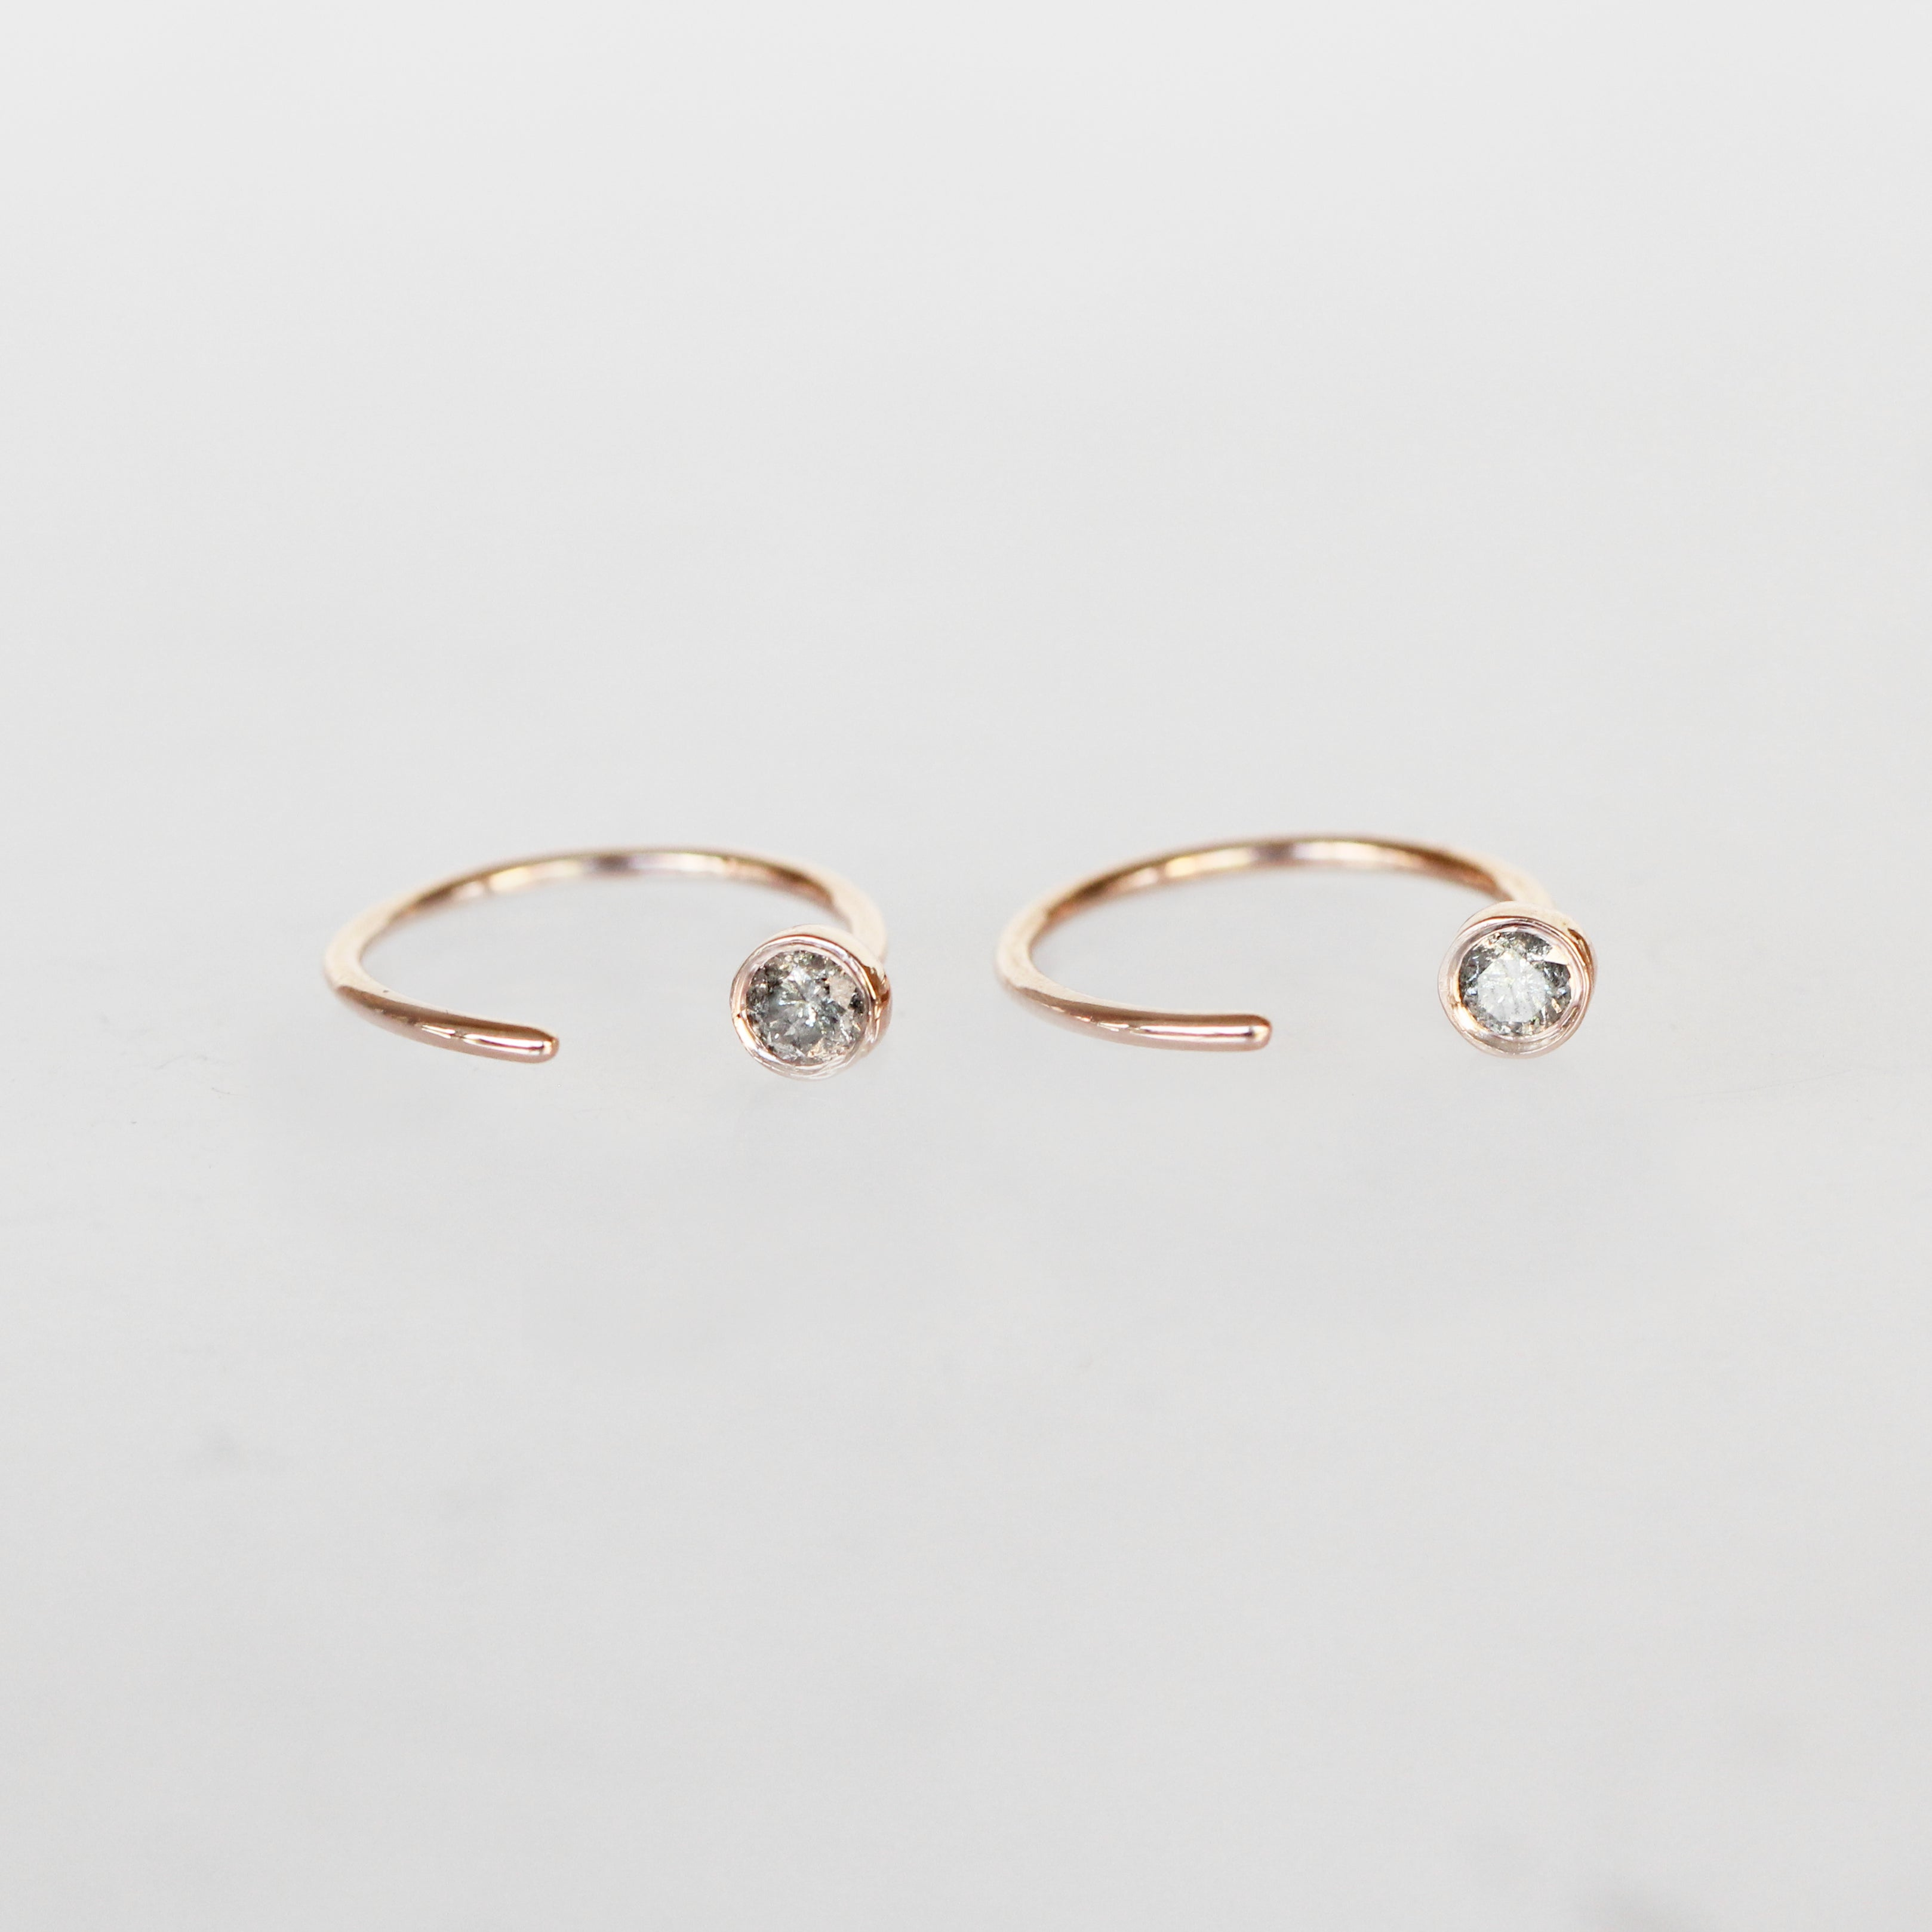 Harper Earrings with Gray Celestial Diamonds ® -14k Rose Gold- Ready to ship - Celestial Diamonds ® by Midwinter Co.